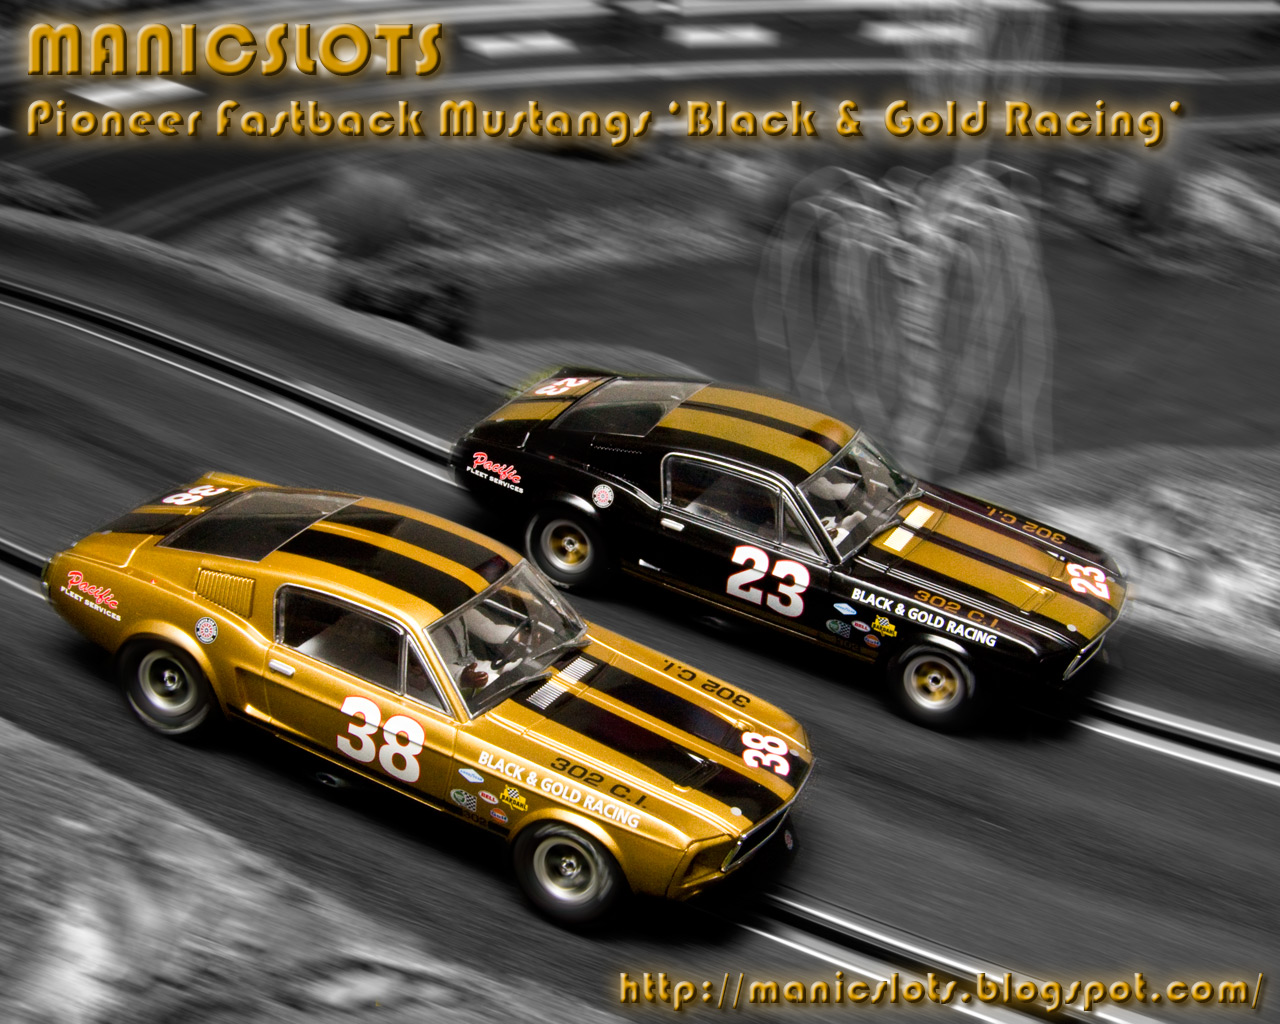 Manicslots Slot Cars And Scenery Page Manicslot S